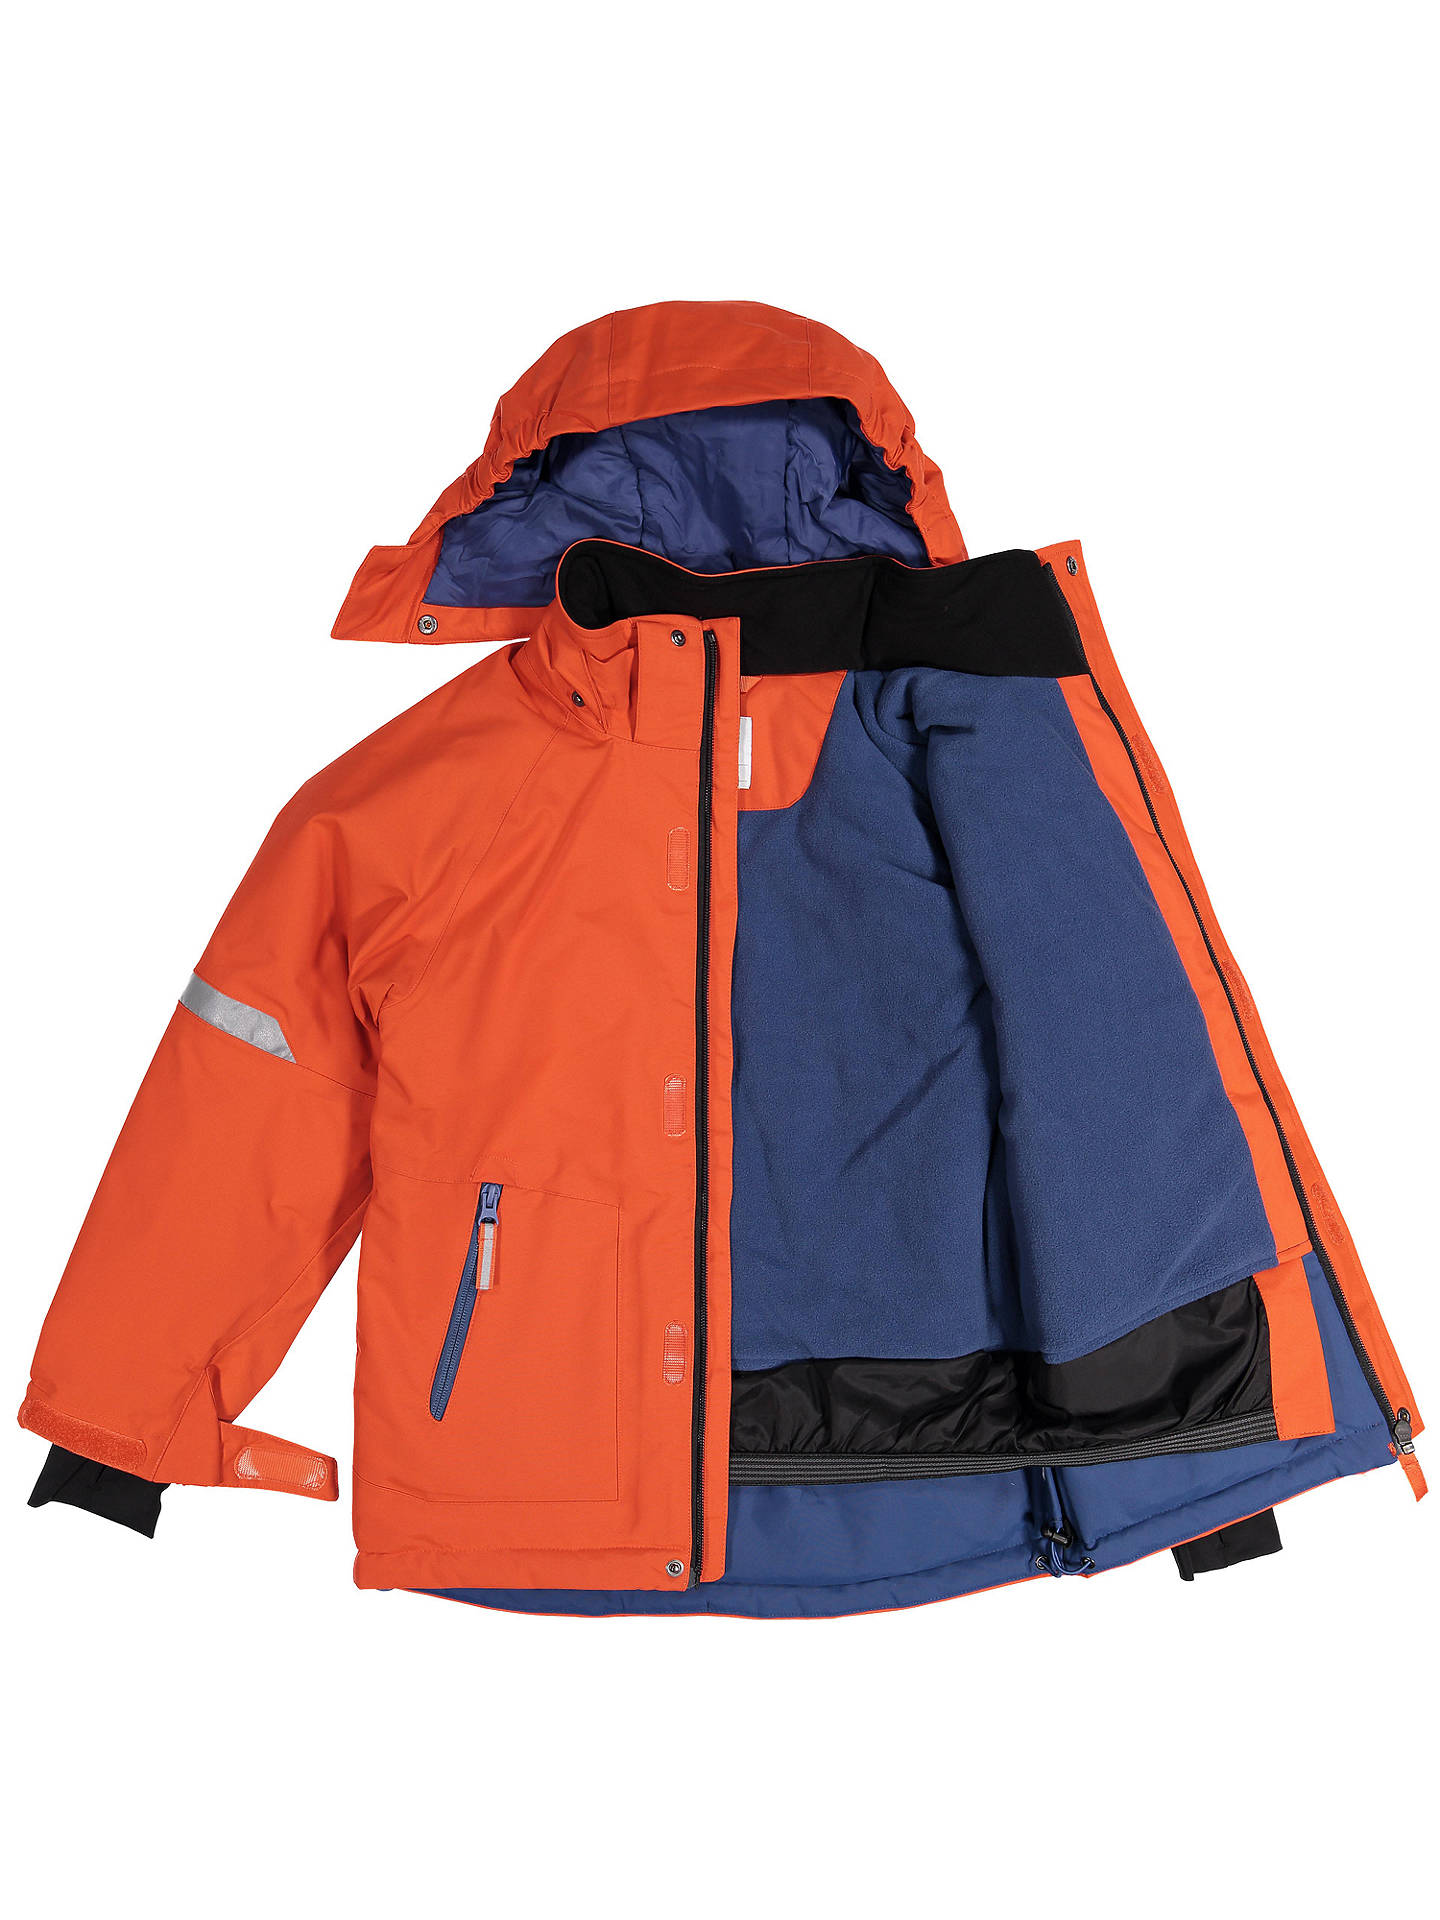 BuyPolarn O. Pyret Children's Waterproof Padded Jacket, Orange, 2-3 years Online at johnlewis.com